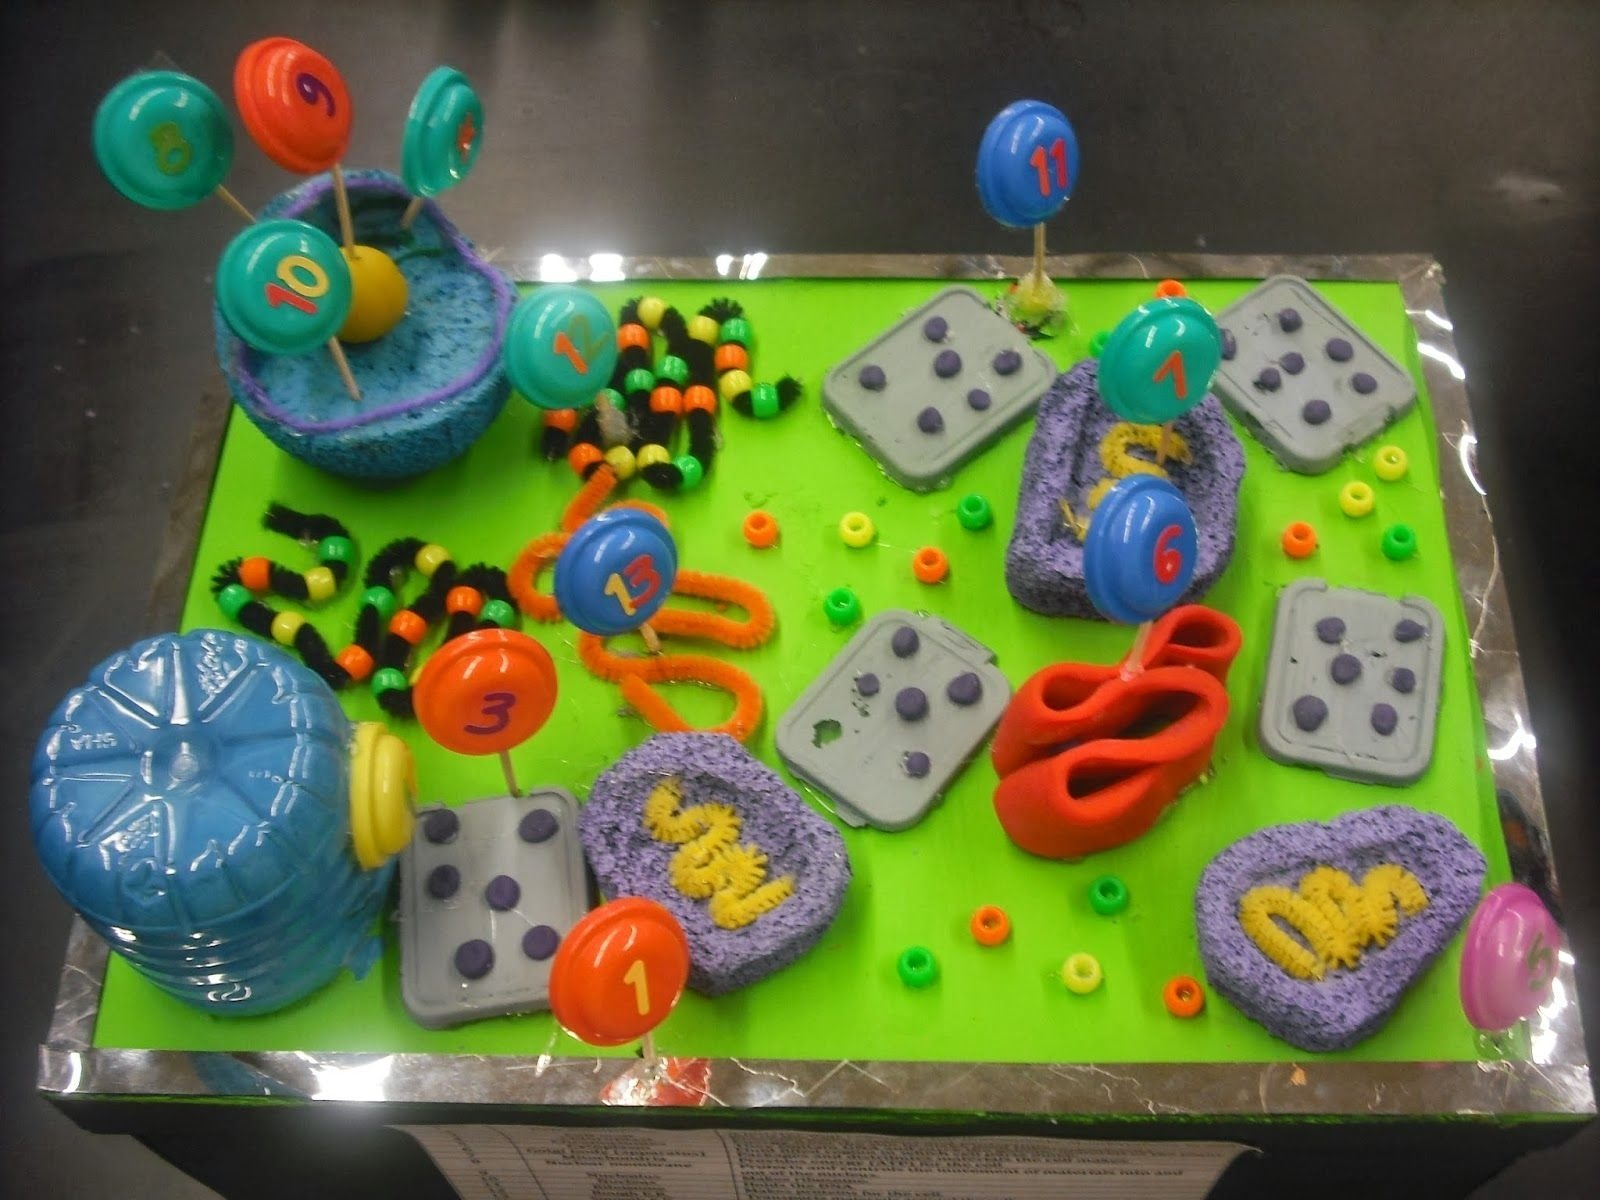 10 Stylish Plant Cell 3D Model Ideas animal and plant cell modelsmr lalatas 7th 8th grade students 1 2020